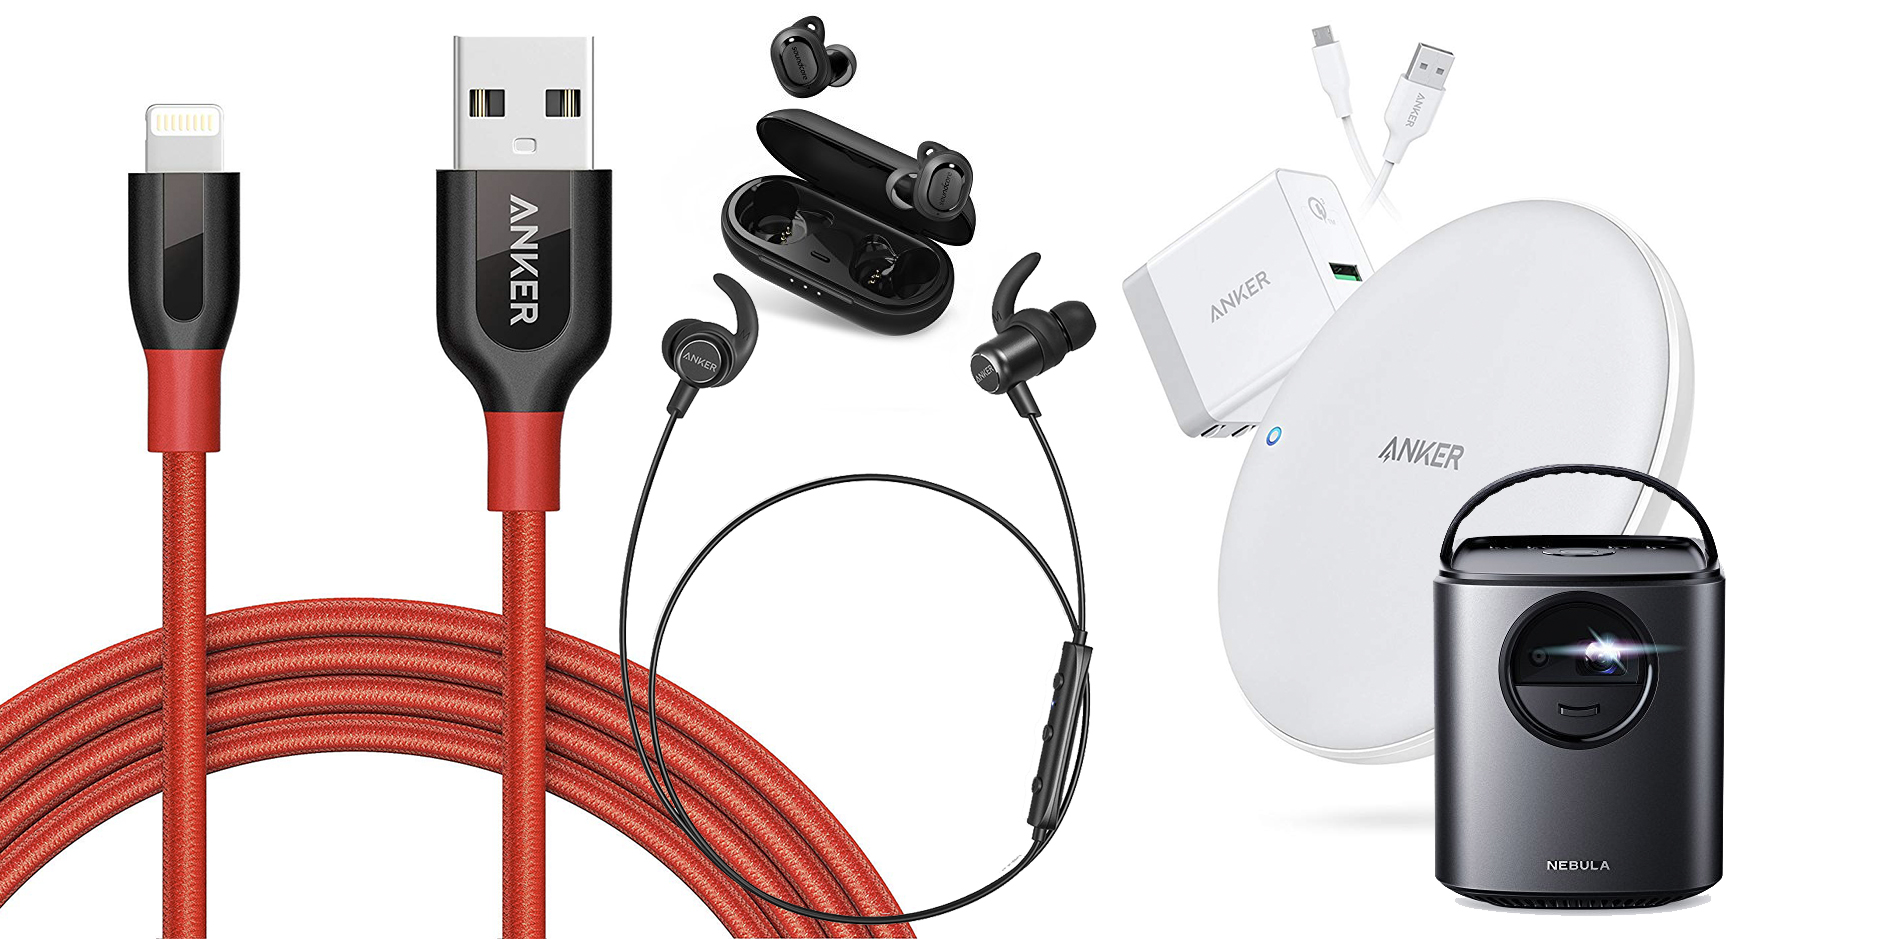 Anker's latest Amazon sale has deals from $13: Truly Wireless Earbuds, Lightning Cables, more